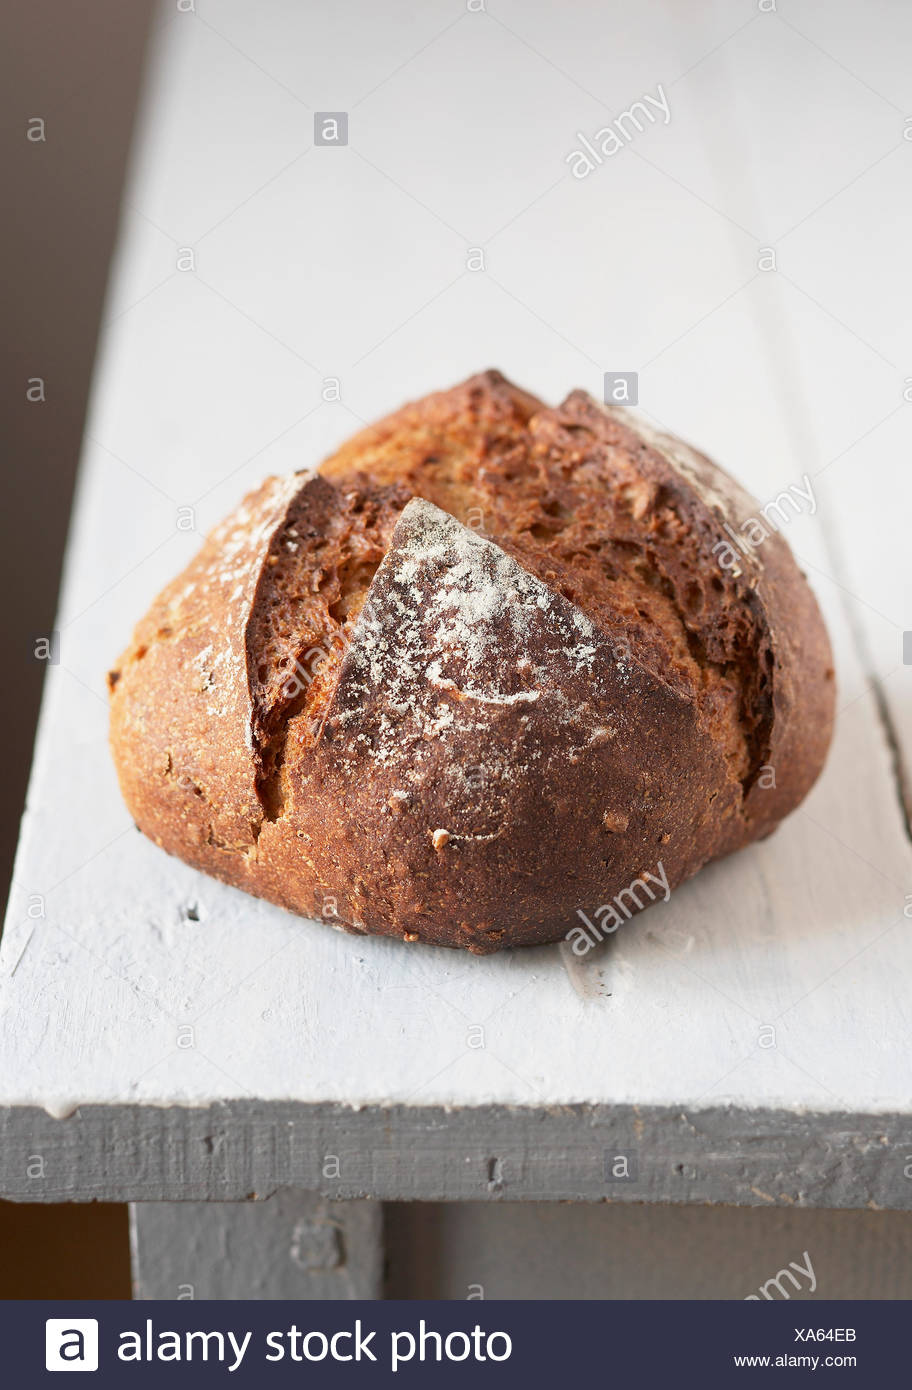 Round loaf of brown bread - Stock Image